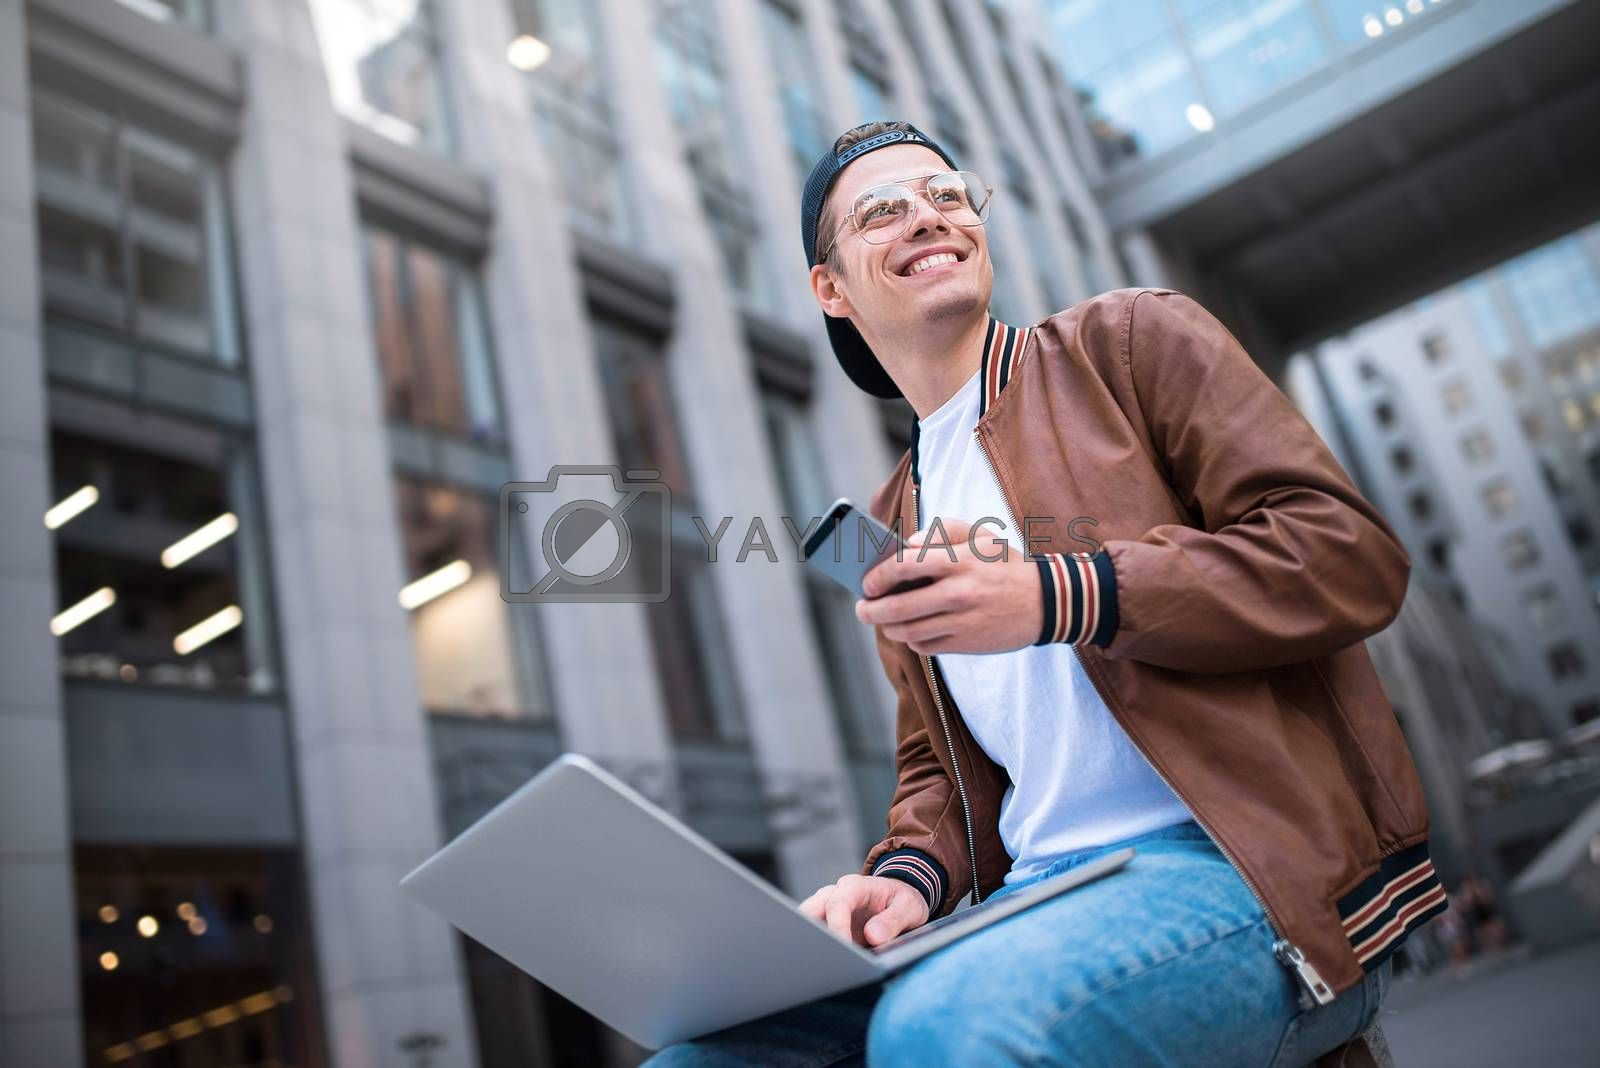 Royalty free image of Smart attitude. Positive handsome man using a laptop and sitting in the street while surfing the internet have a web conference. Web chat online conference. by Nickstock